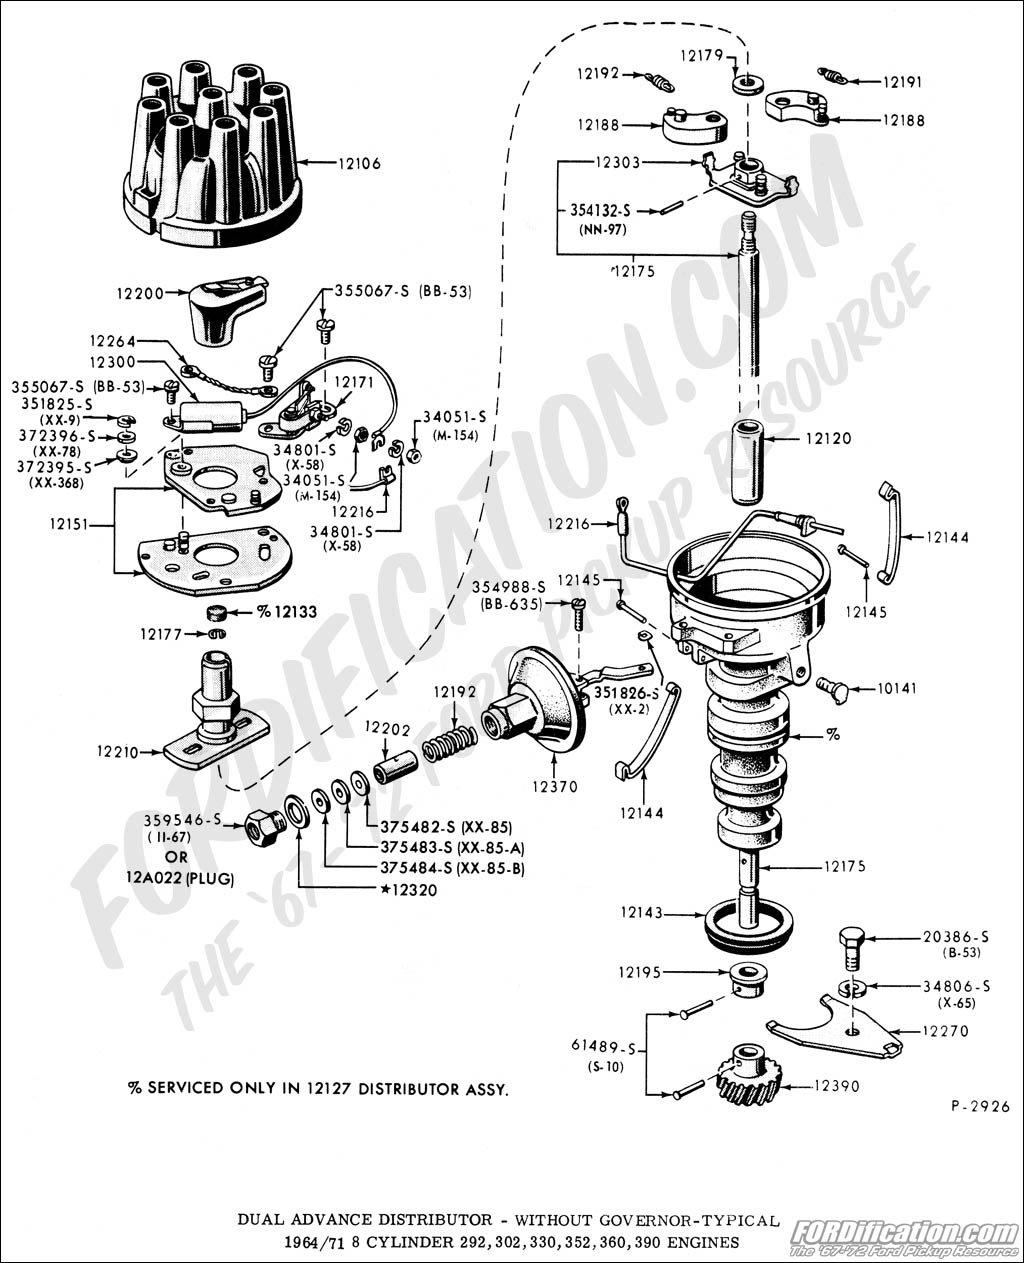 Ford Truck Technical Drawings And Schematics Section I 1987 Ranger Body Wiring Diagram Schematic Electrical